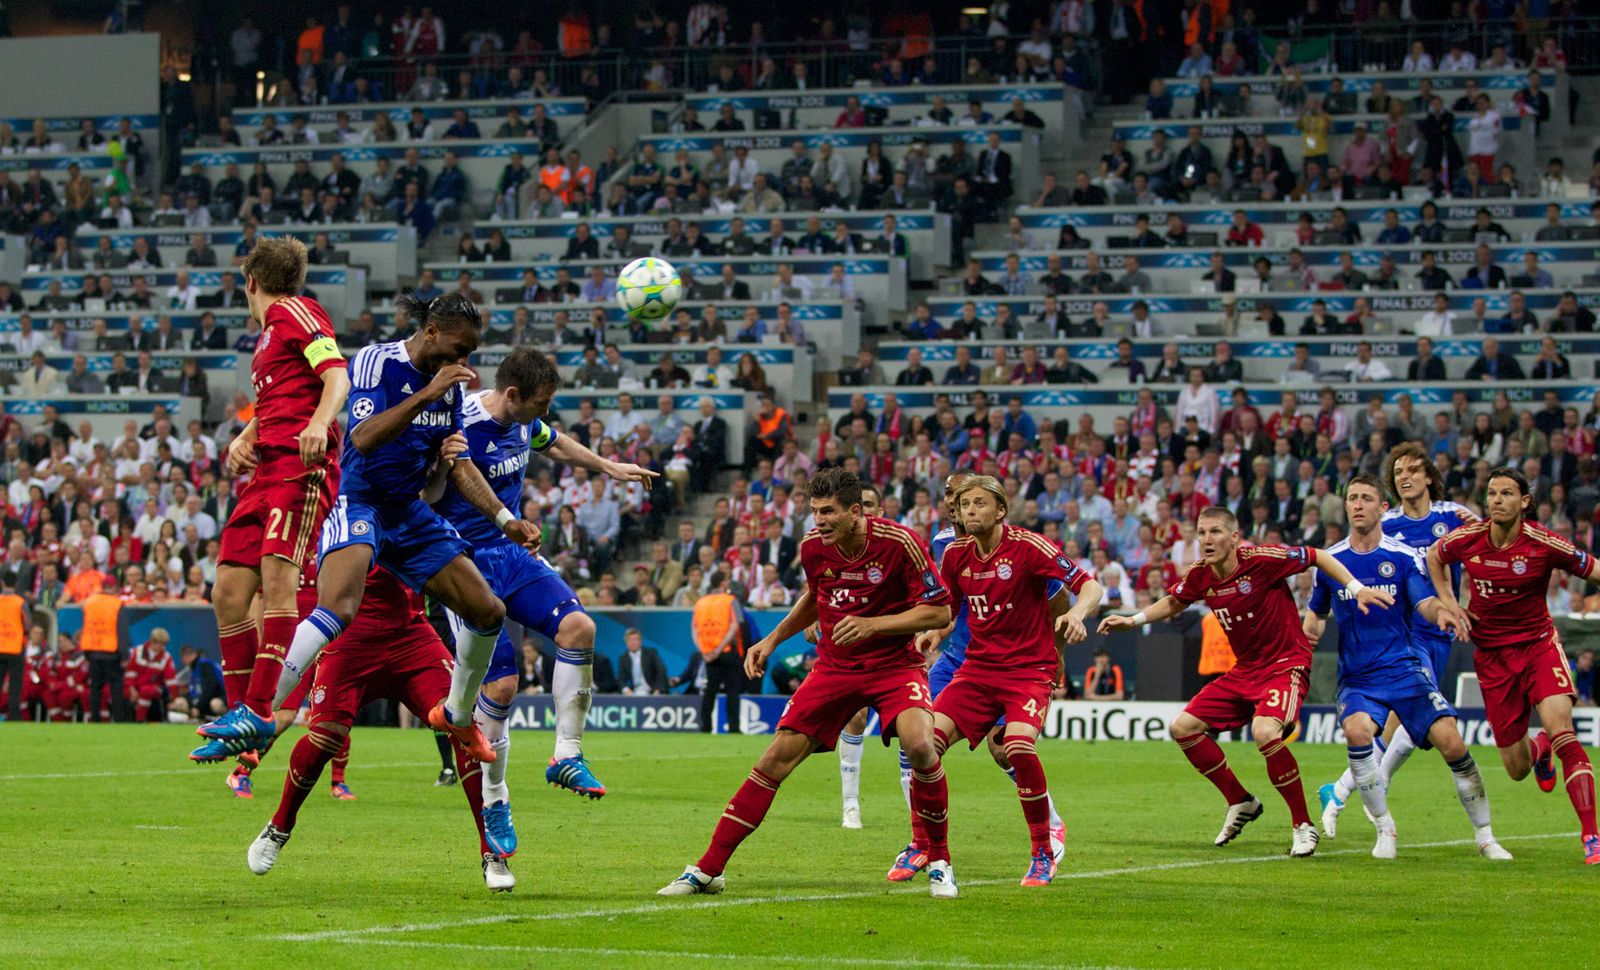 Chelsea s Didier Drogba scores the equalising 1 1 goal to secure extra time against FC Bayern Munche